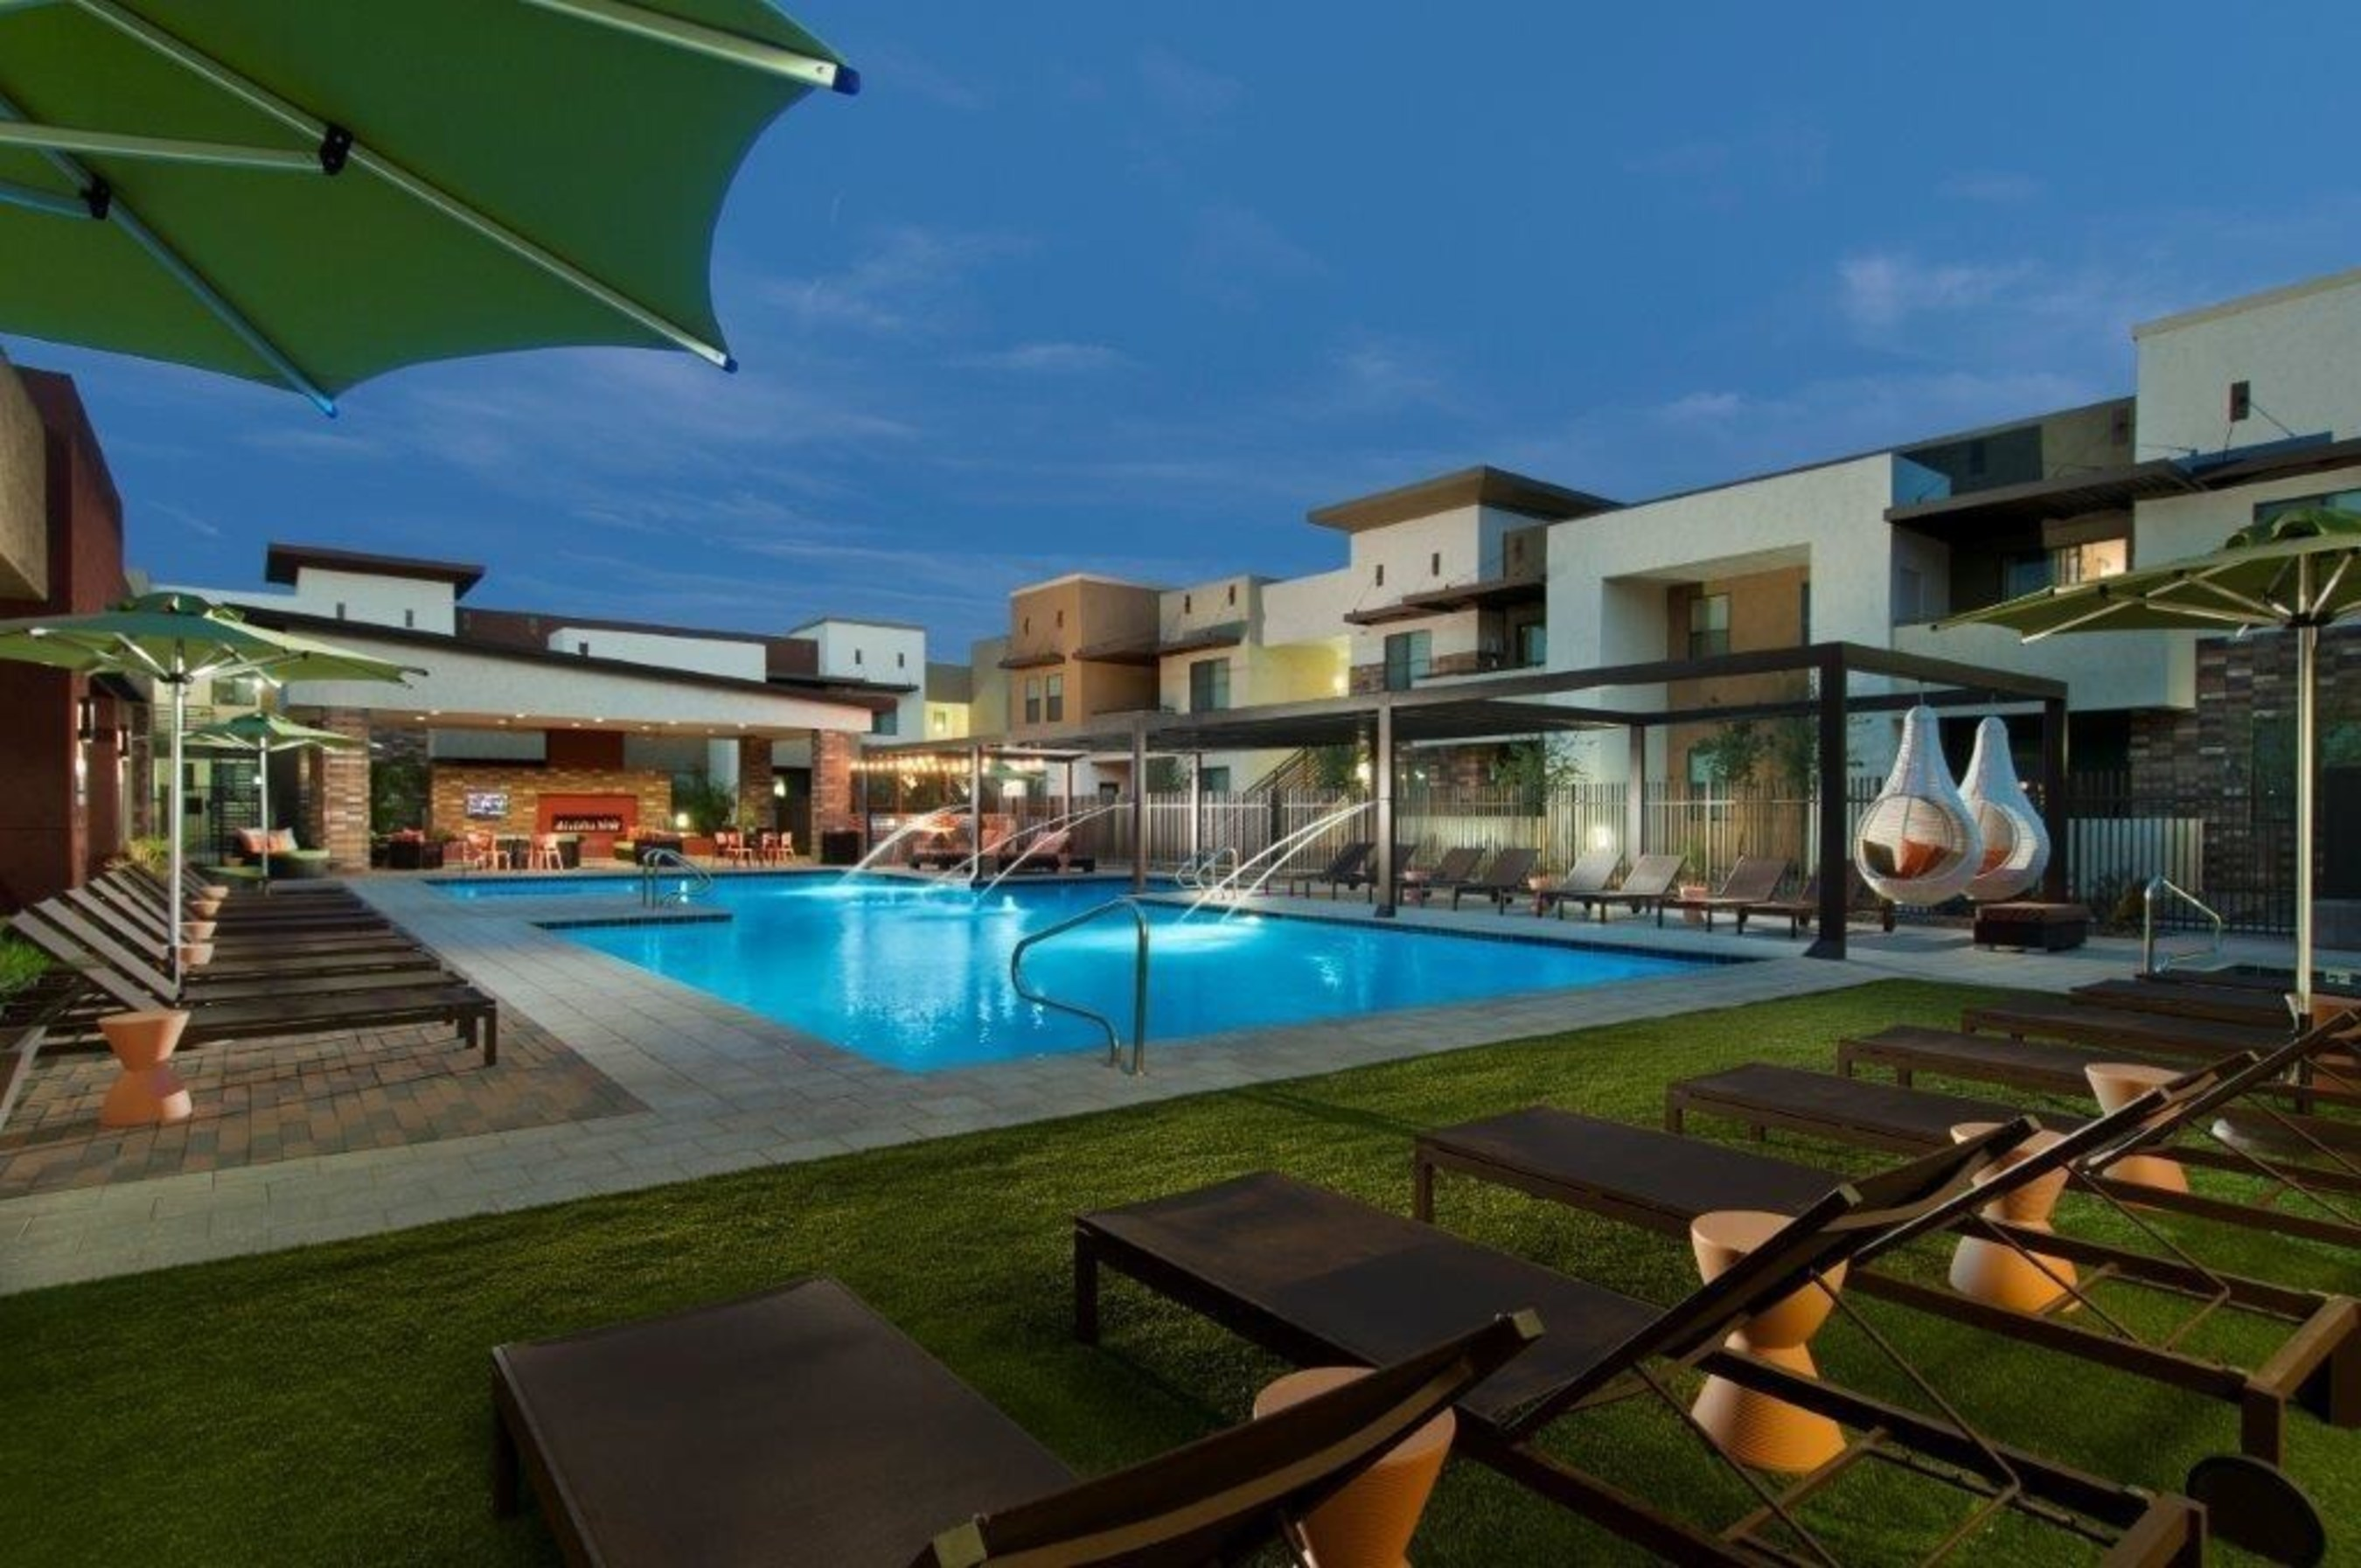 Pool area at Vive in Chandler, Arizona